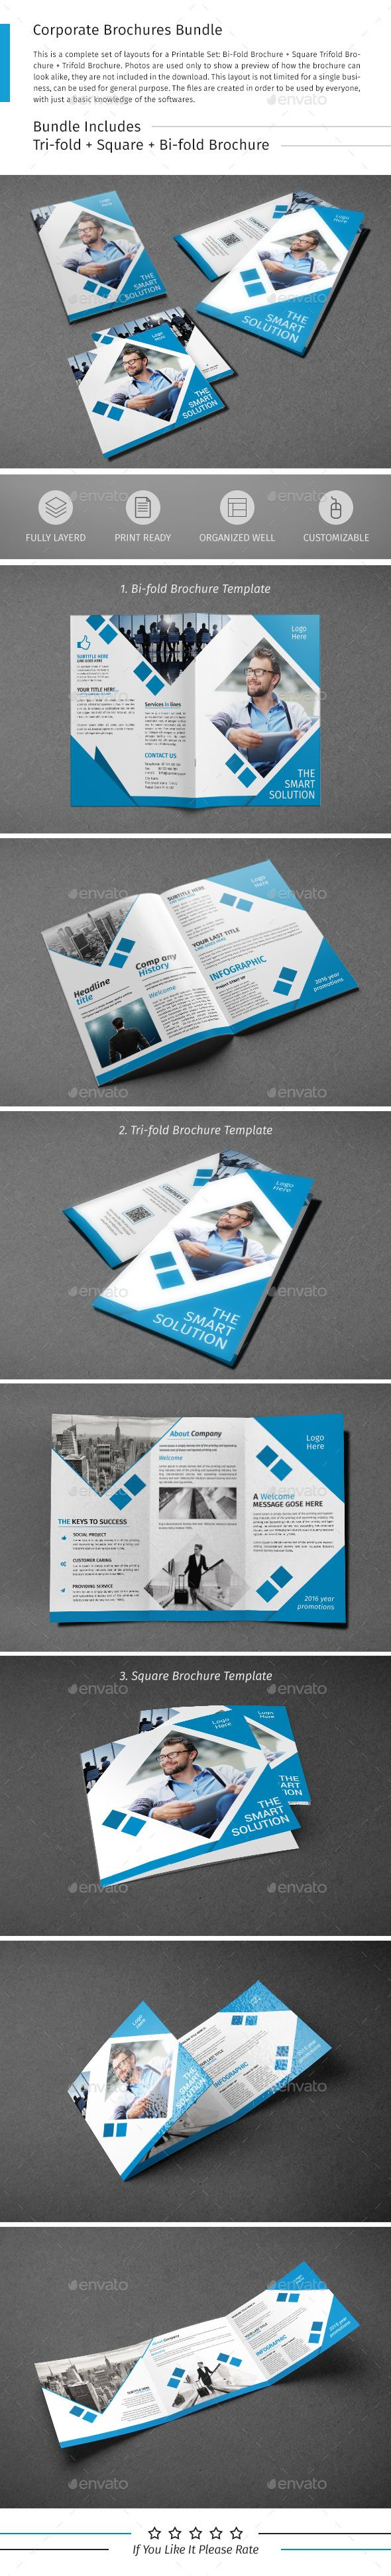 Best Brochure Templates Images On   Brochure